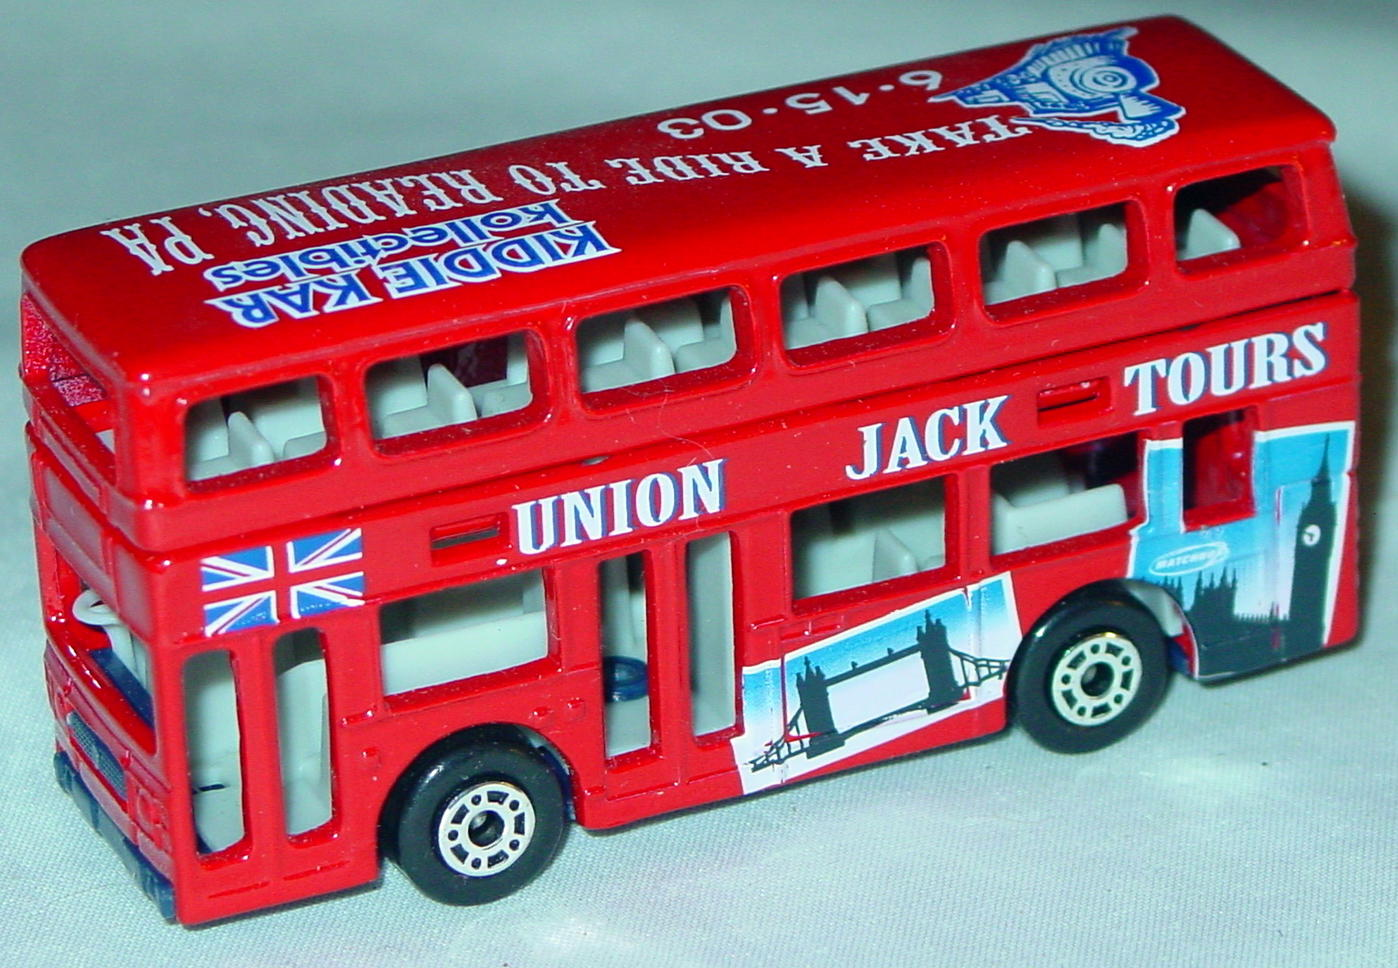 ASAP-CCI 17 C 68 - Titan Bus Red grey interior Union Jack Kiddie Car CCI